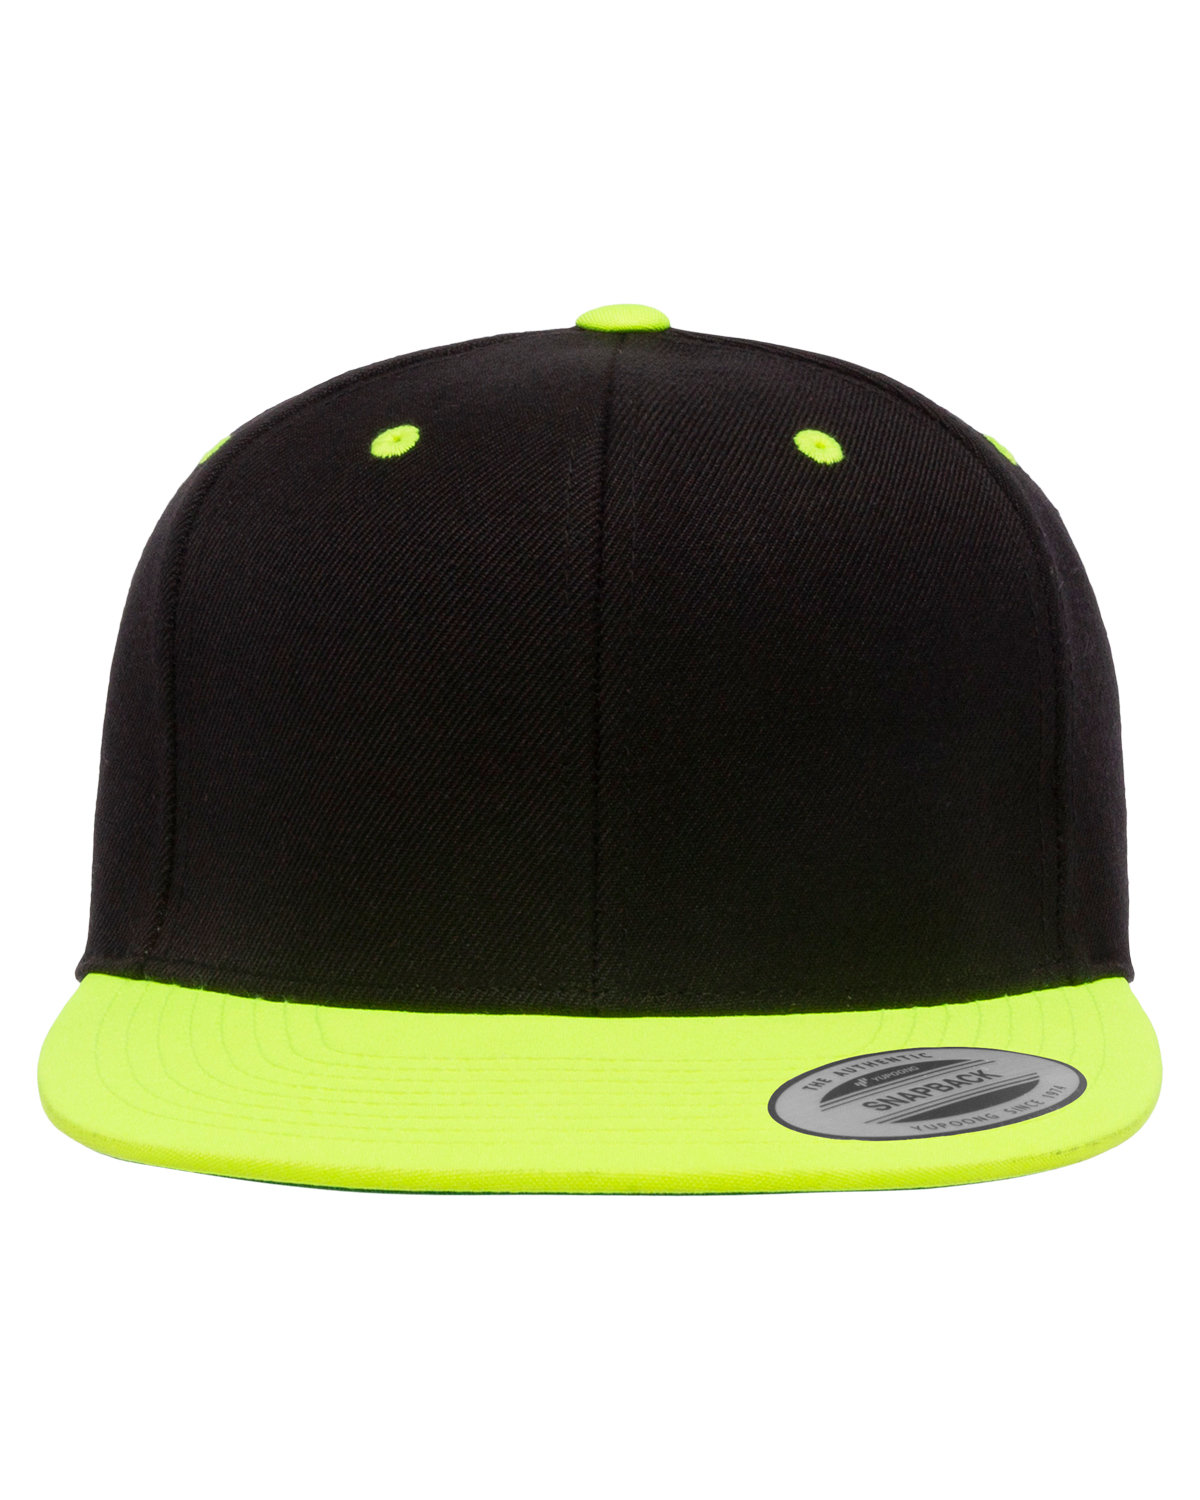 Yupoong Adult 6-Panel Structured Flat Visor ClassicSnapback BLACK/ NEON LIME